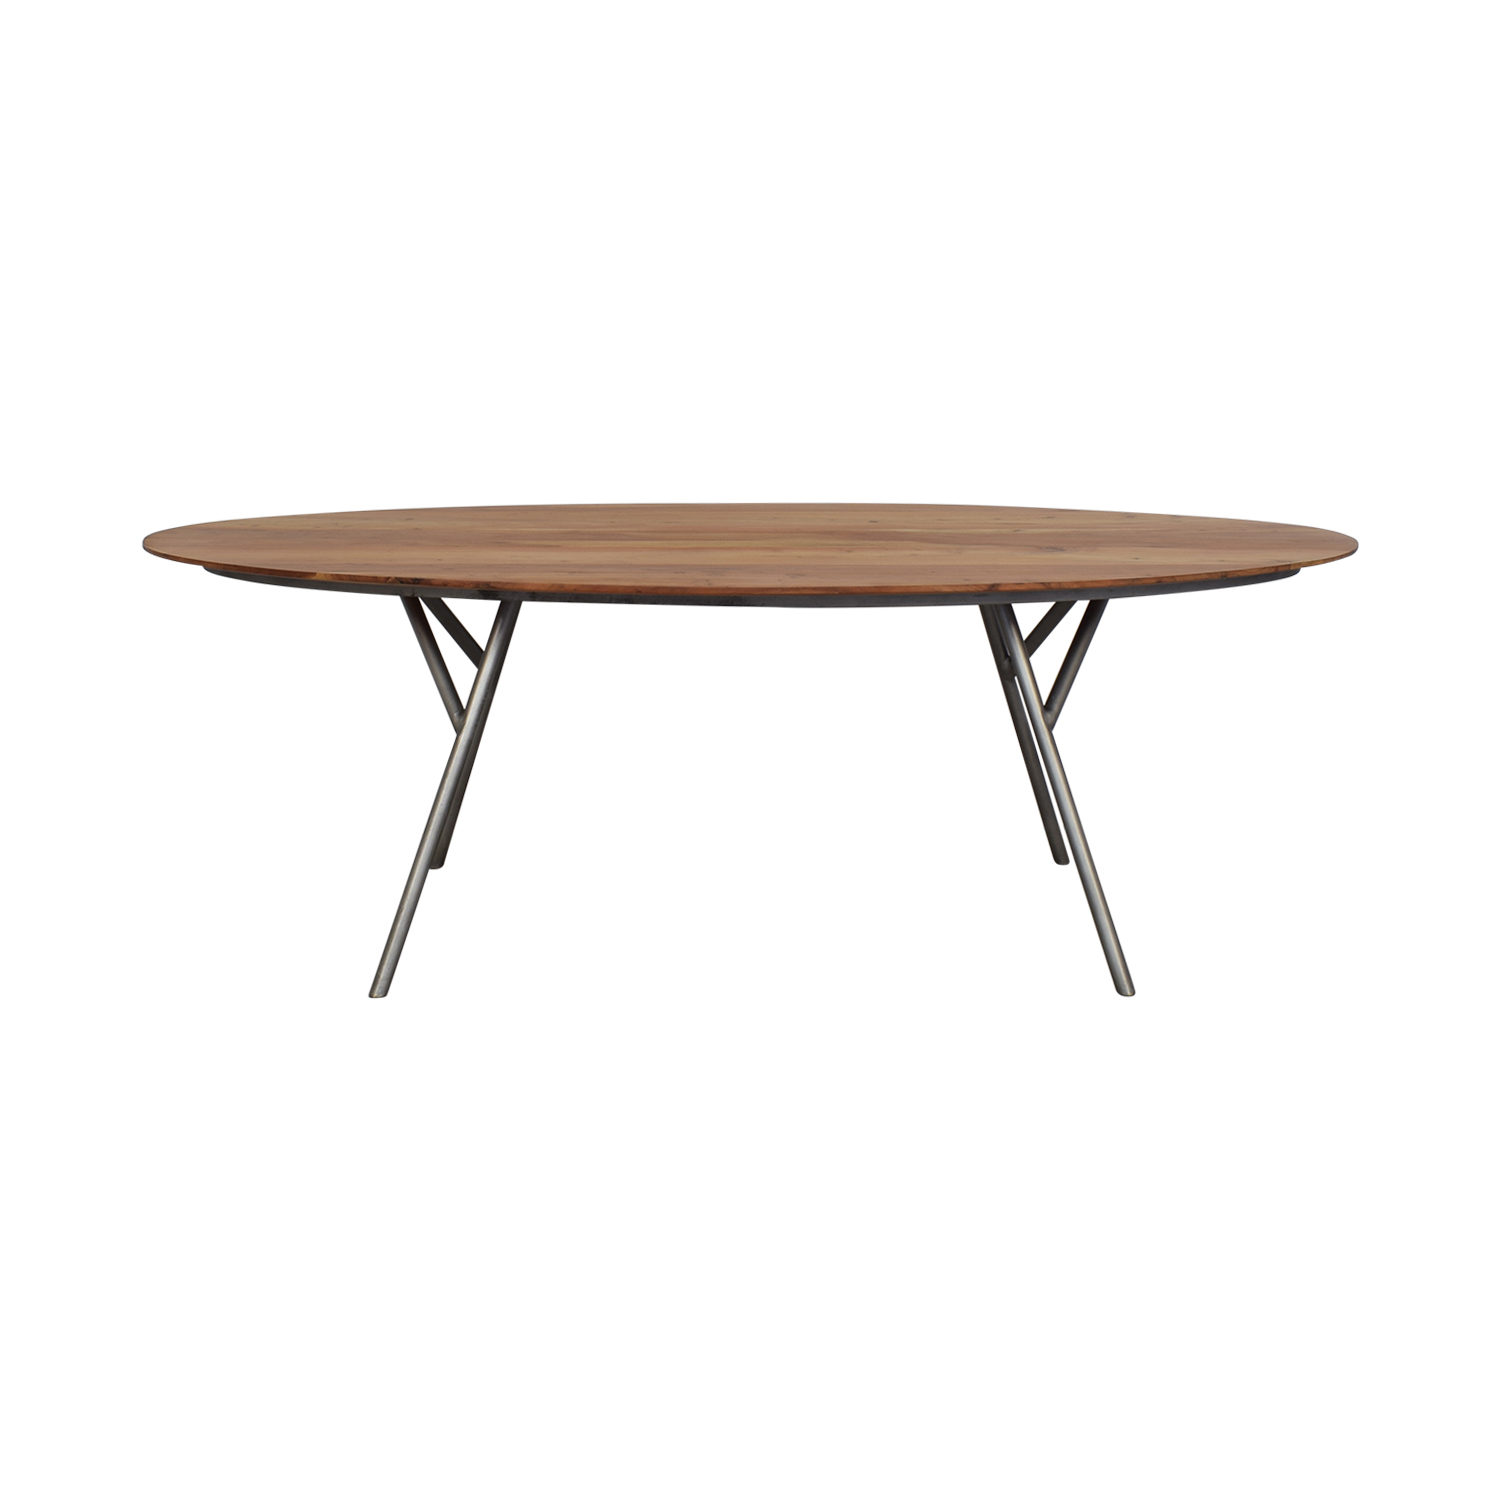 CB2 CB2 Oval Dining Table